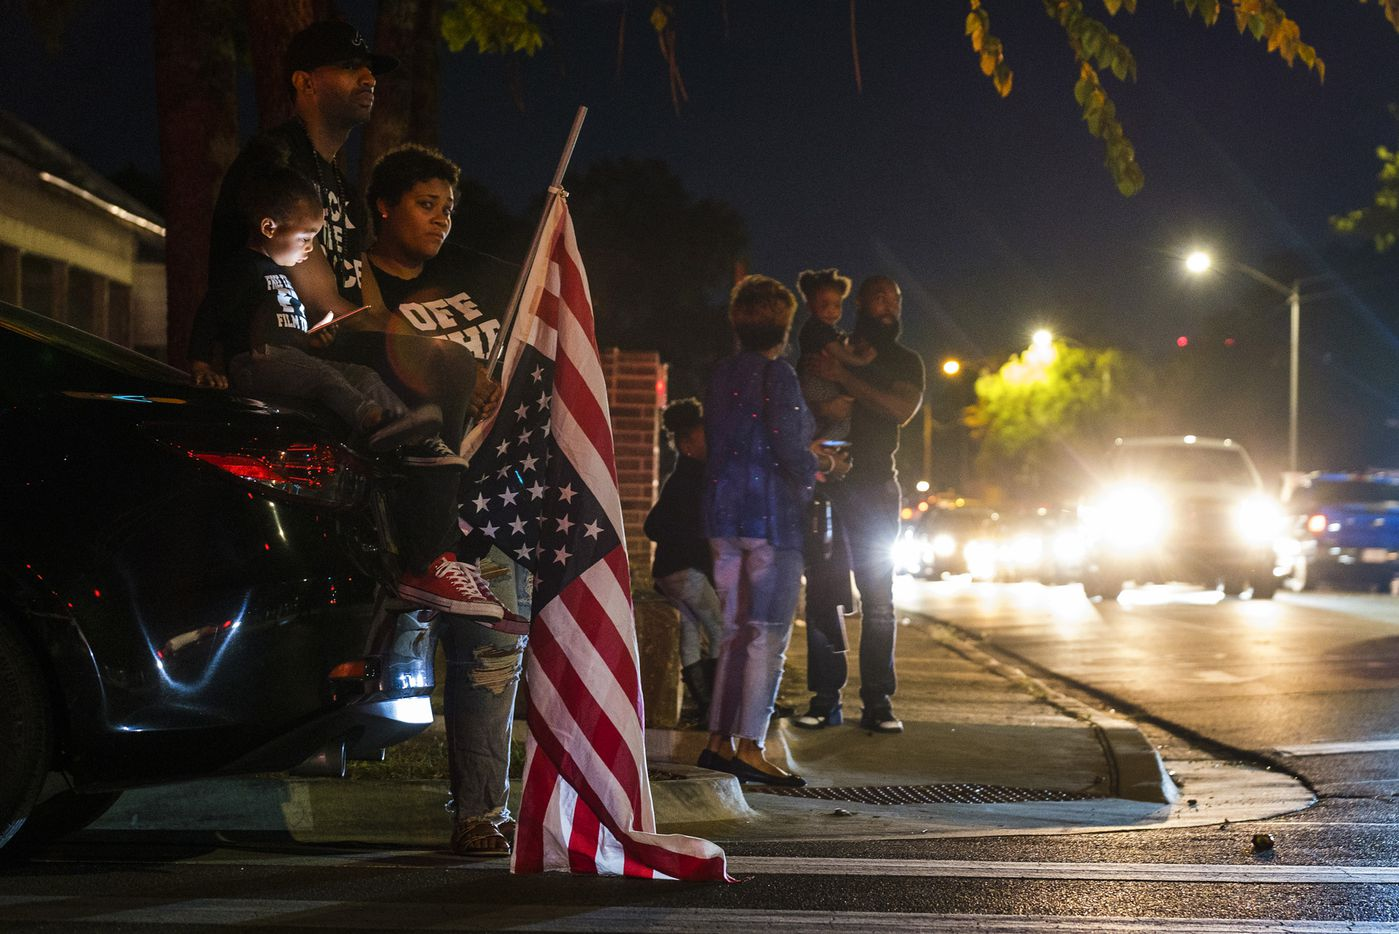 Protestors, including a man carrying an upside-down American flag, gathered outside the house where Atatiana Jefferson was shot and killed, during a community vigil for Jefferson on Sunday, Oct. 13, 2019, in Fort Worth.